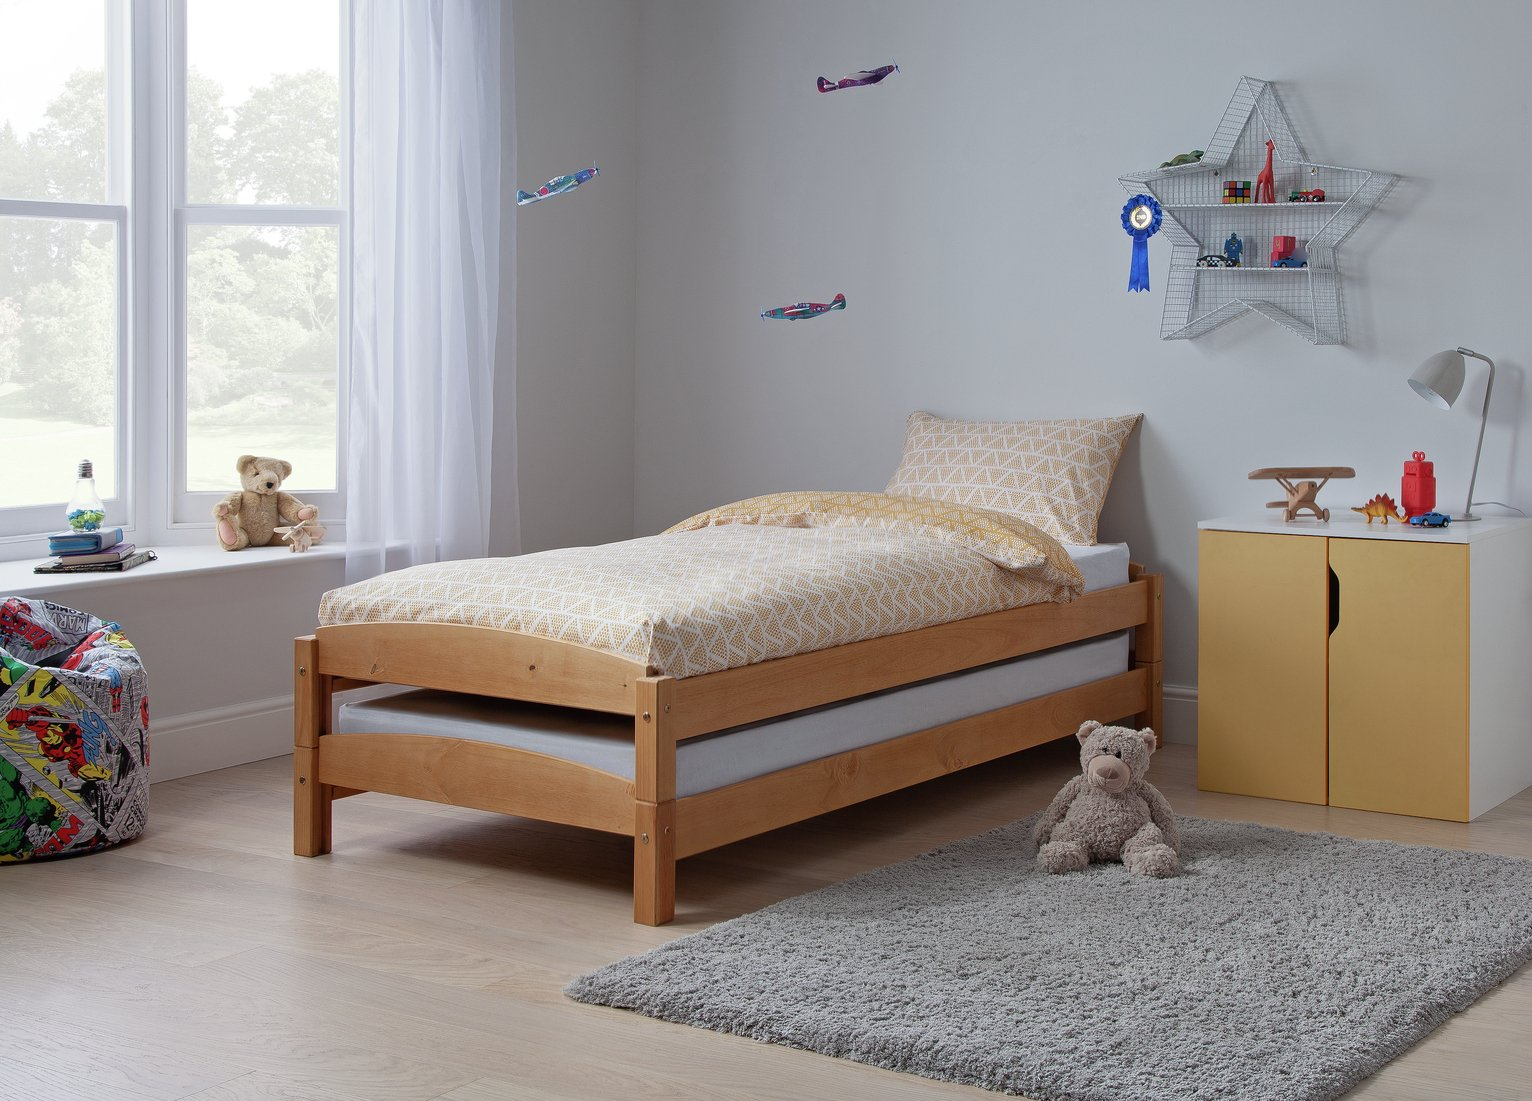 Argos Home Stakka II Guestbed and 2 Mattresses - Pine